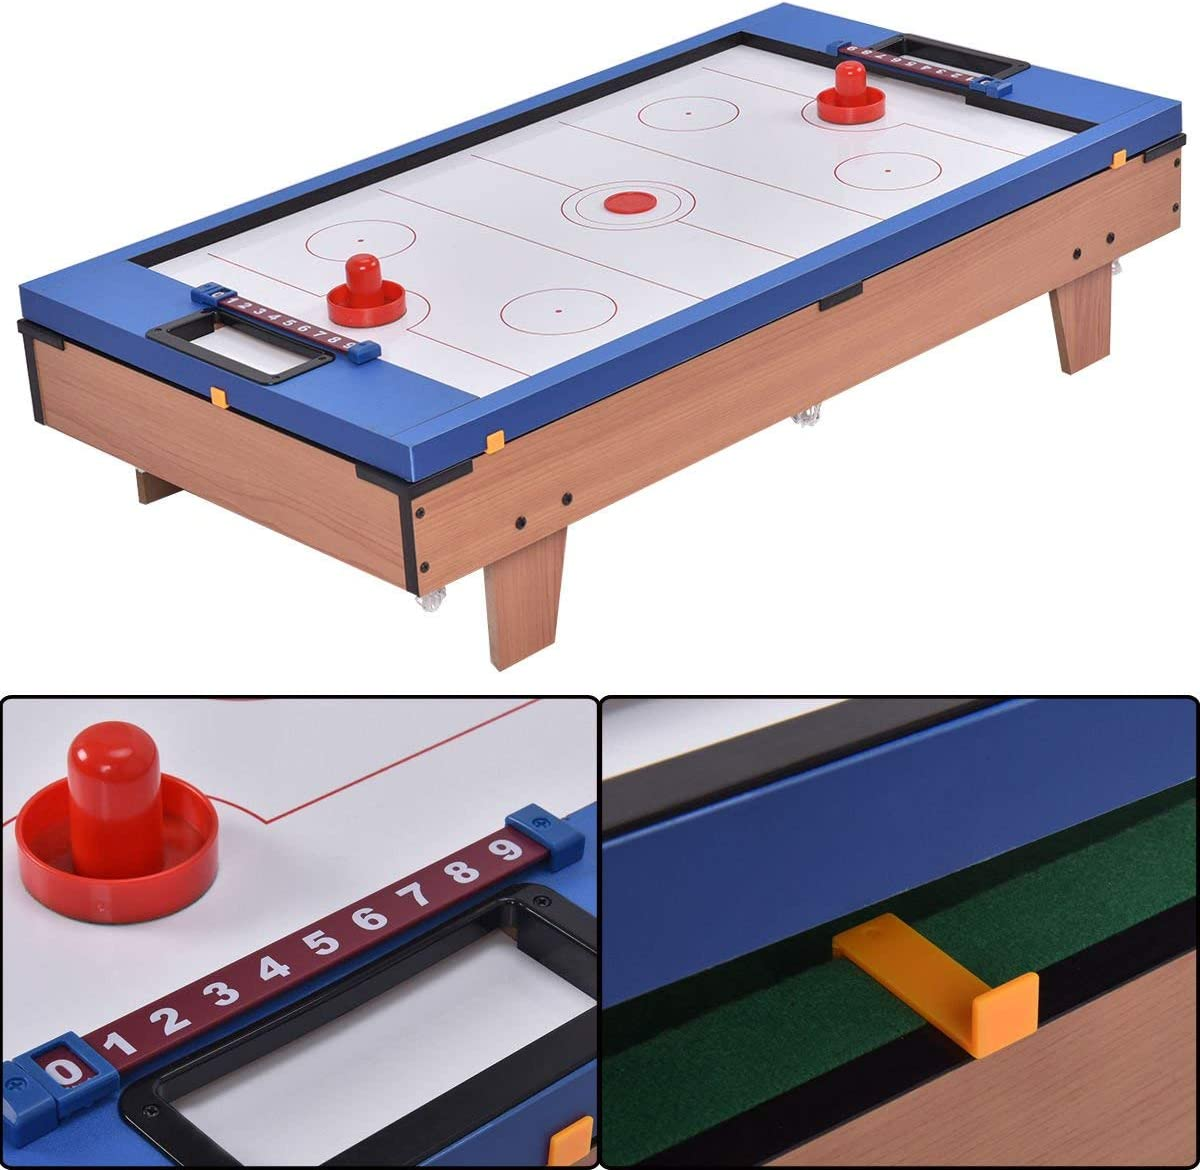 ReunionG 4 in 1 Multi Game Table Including Hockey Foosball Table Tennis Billiard Combination